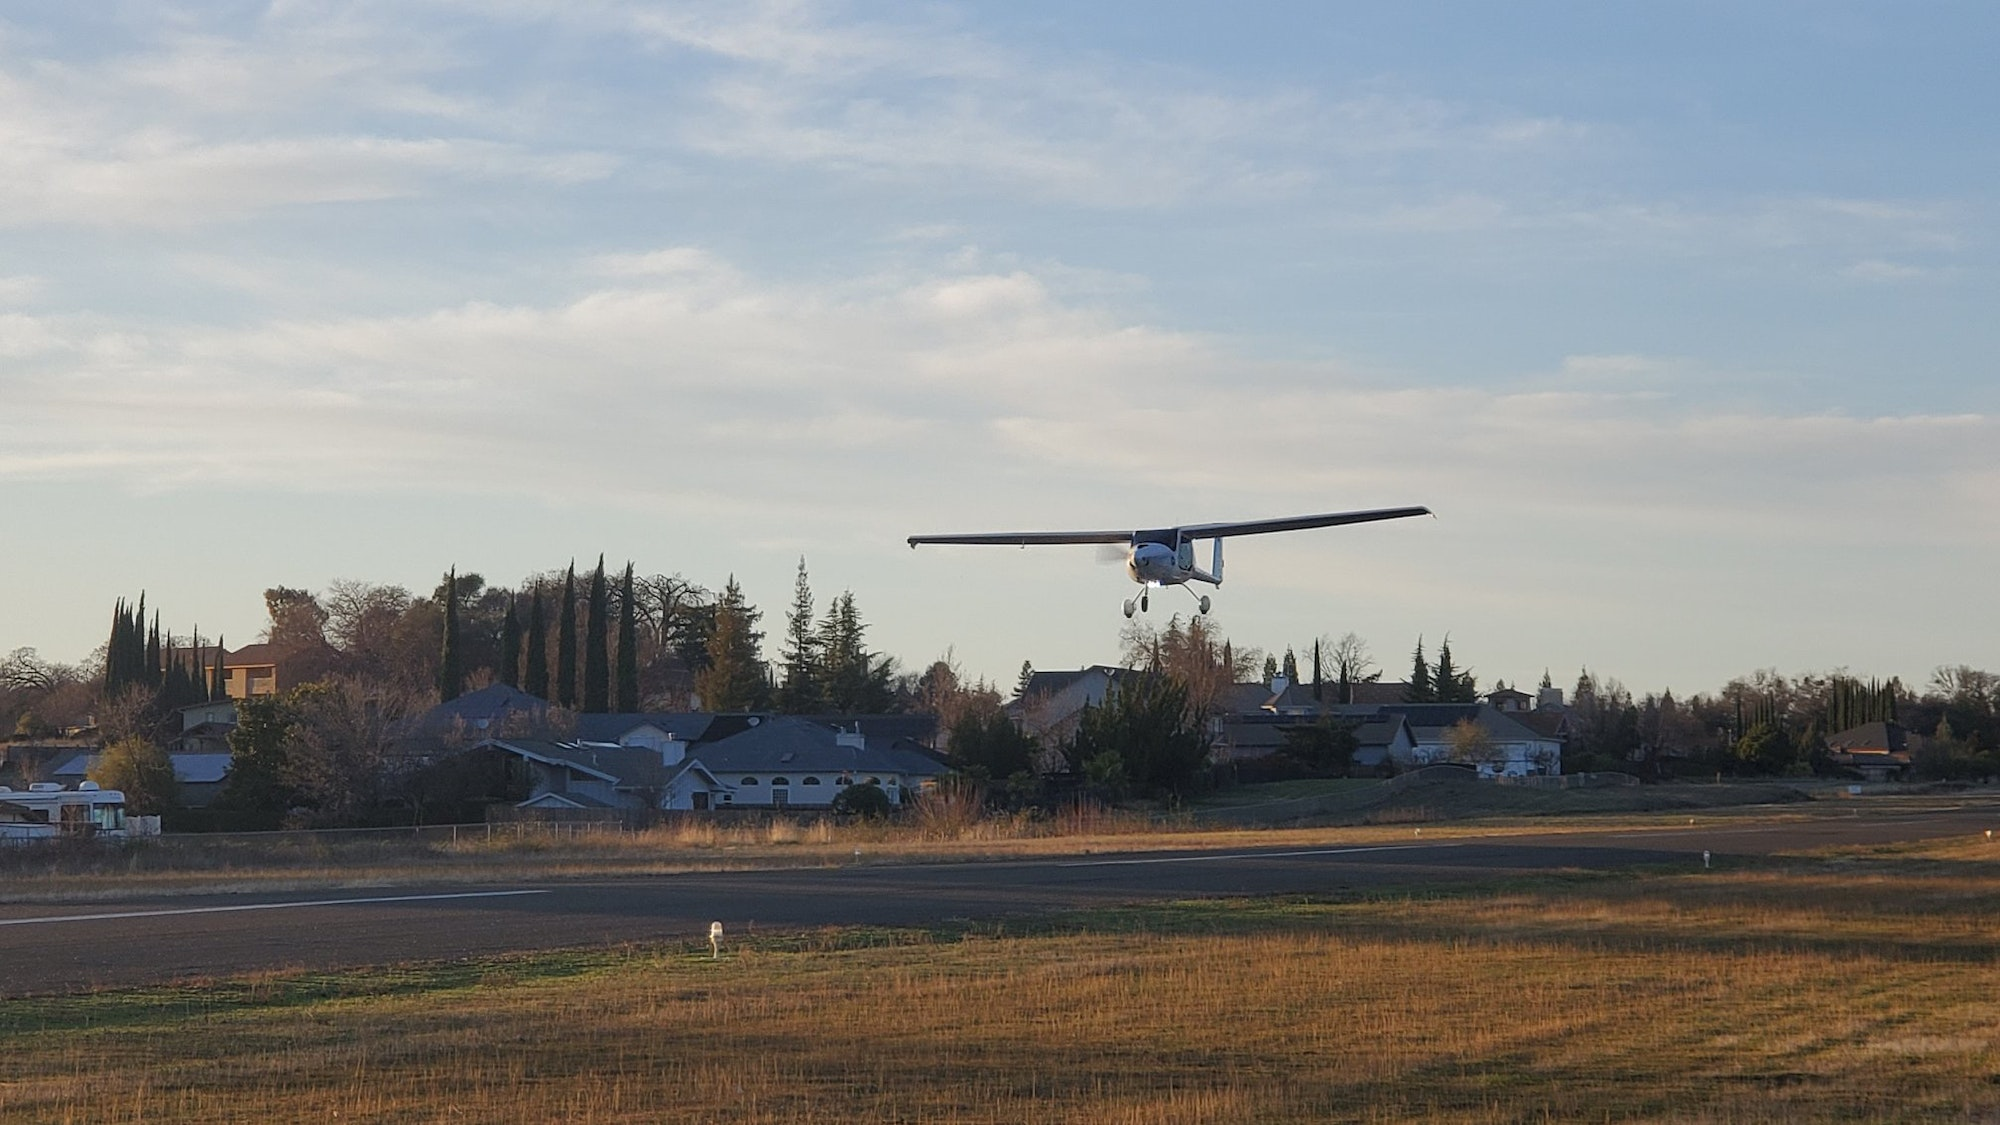 A small aircraft is landing on a late afternoon